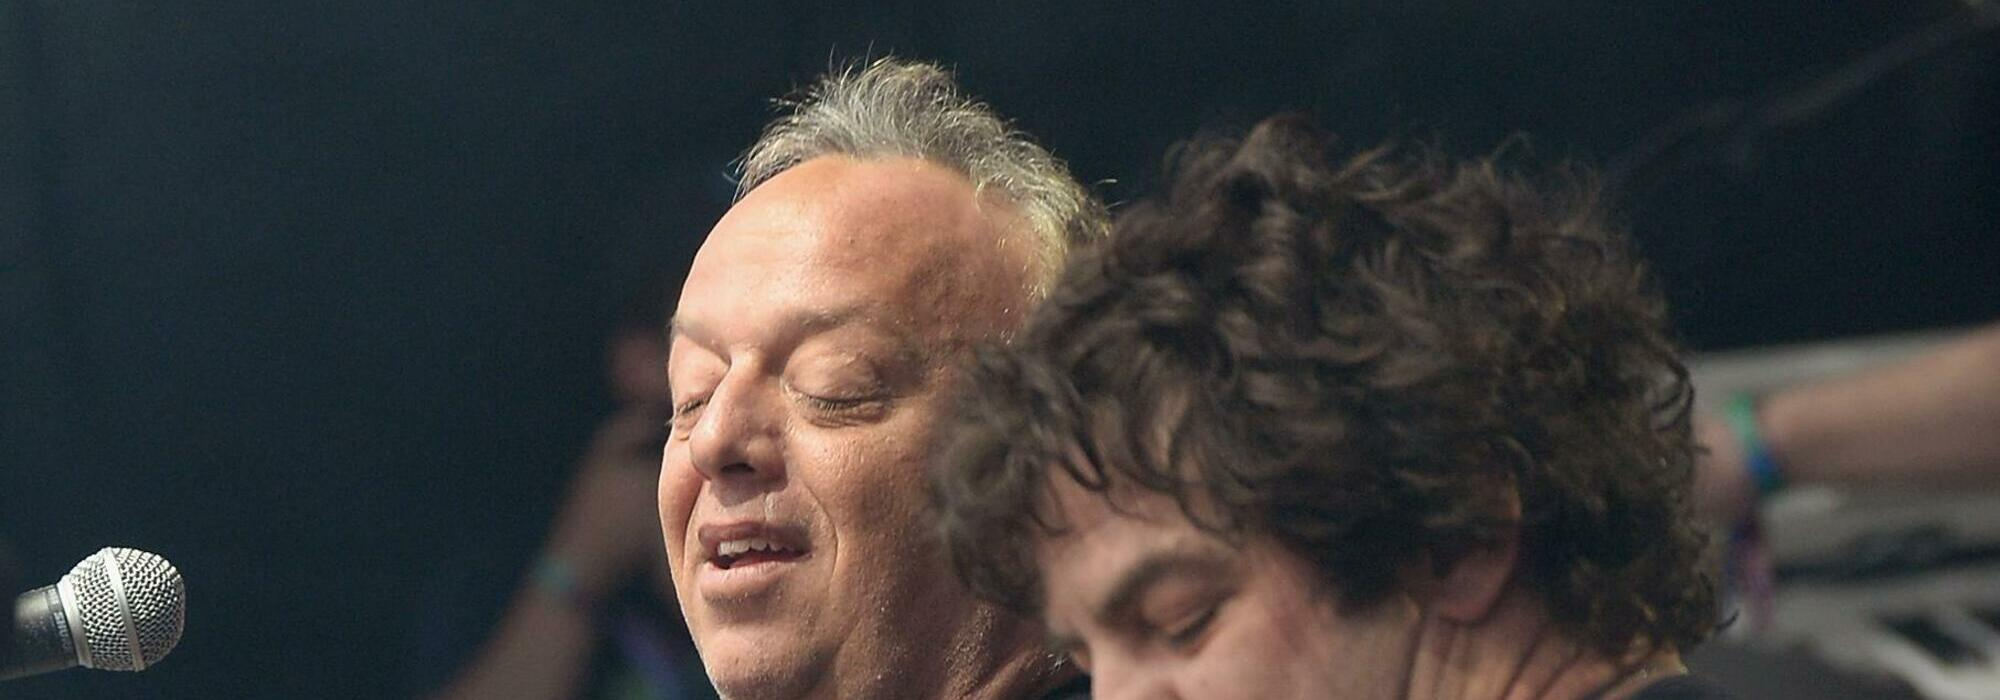 A Ween live event